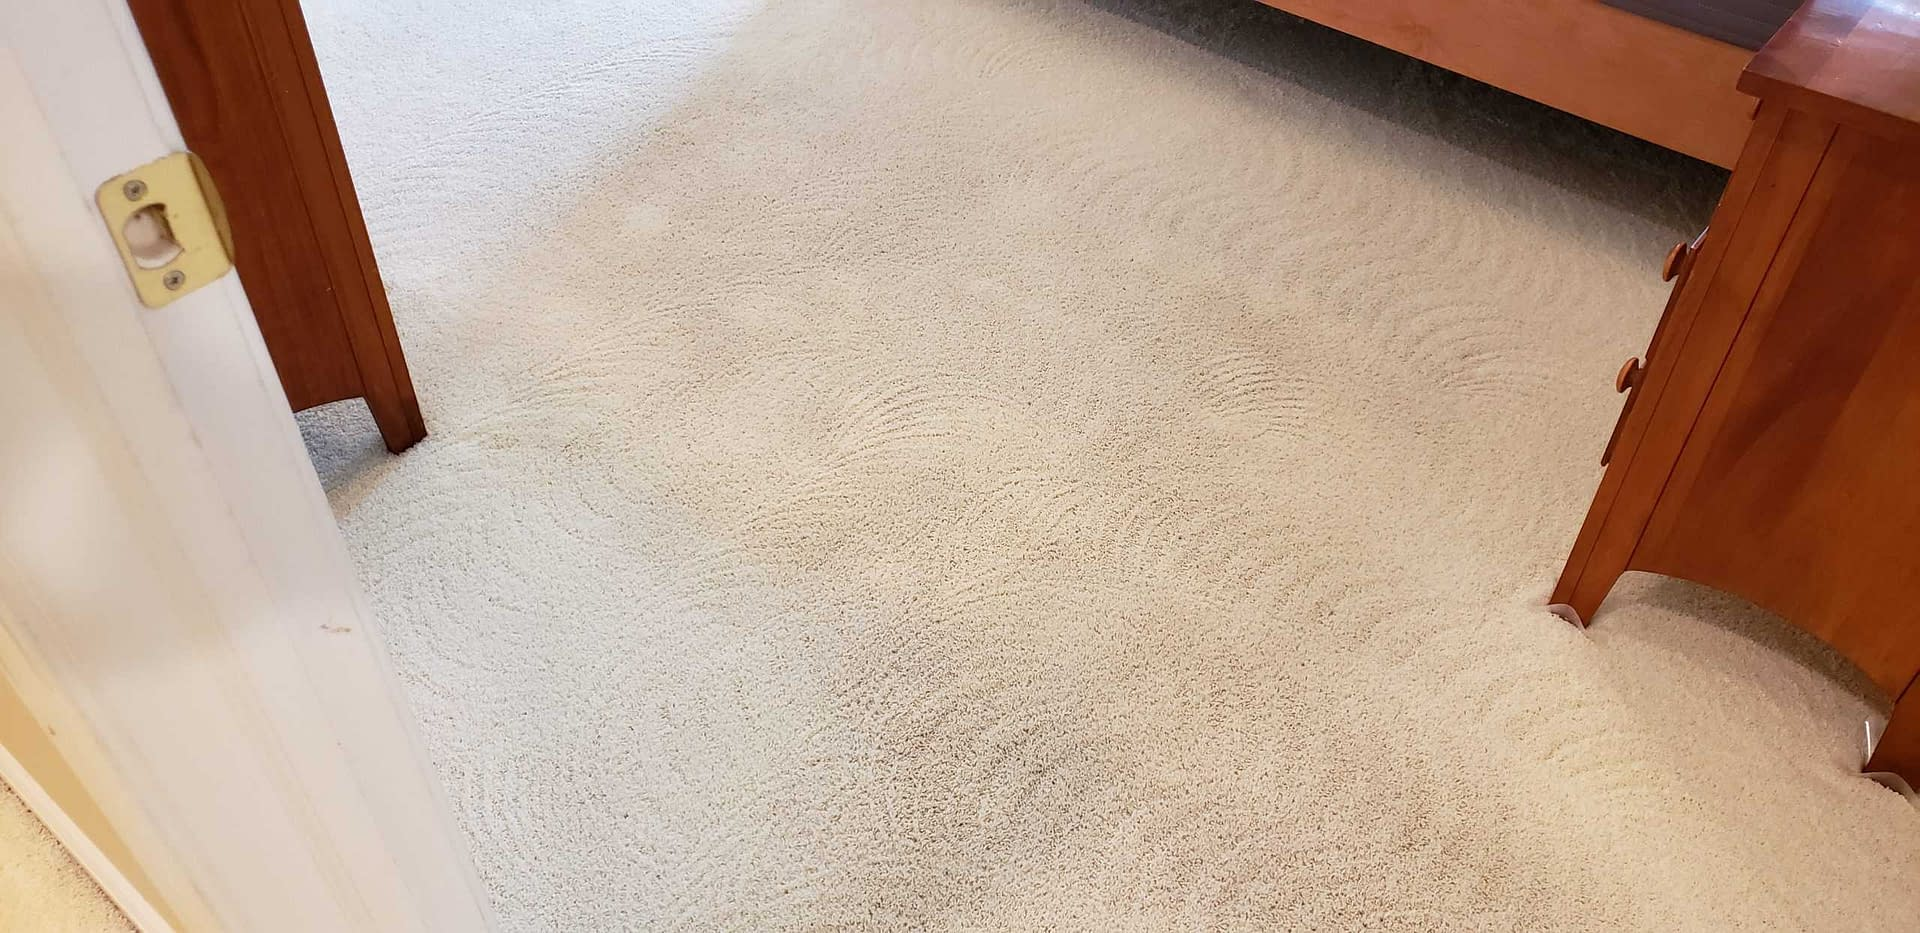 Bedroom carpet cleaned in Chalfont, PA